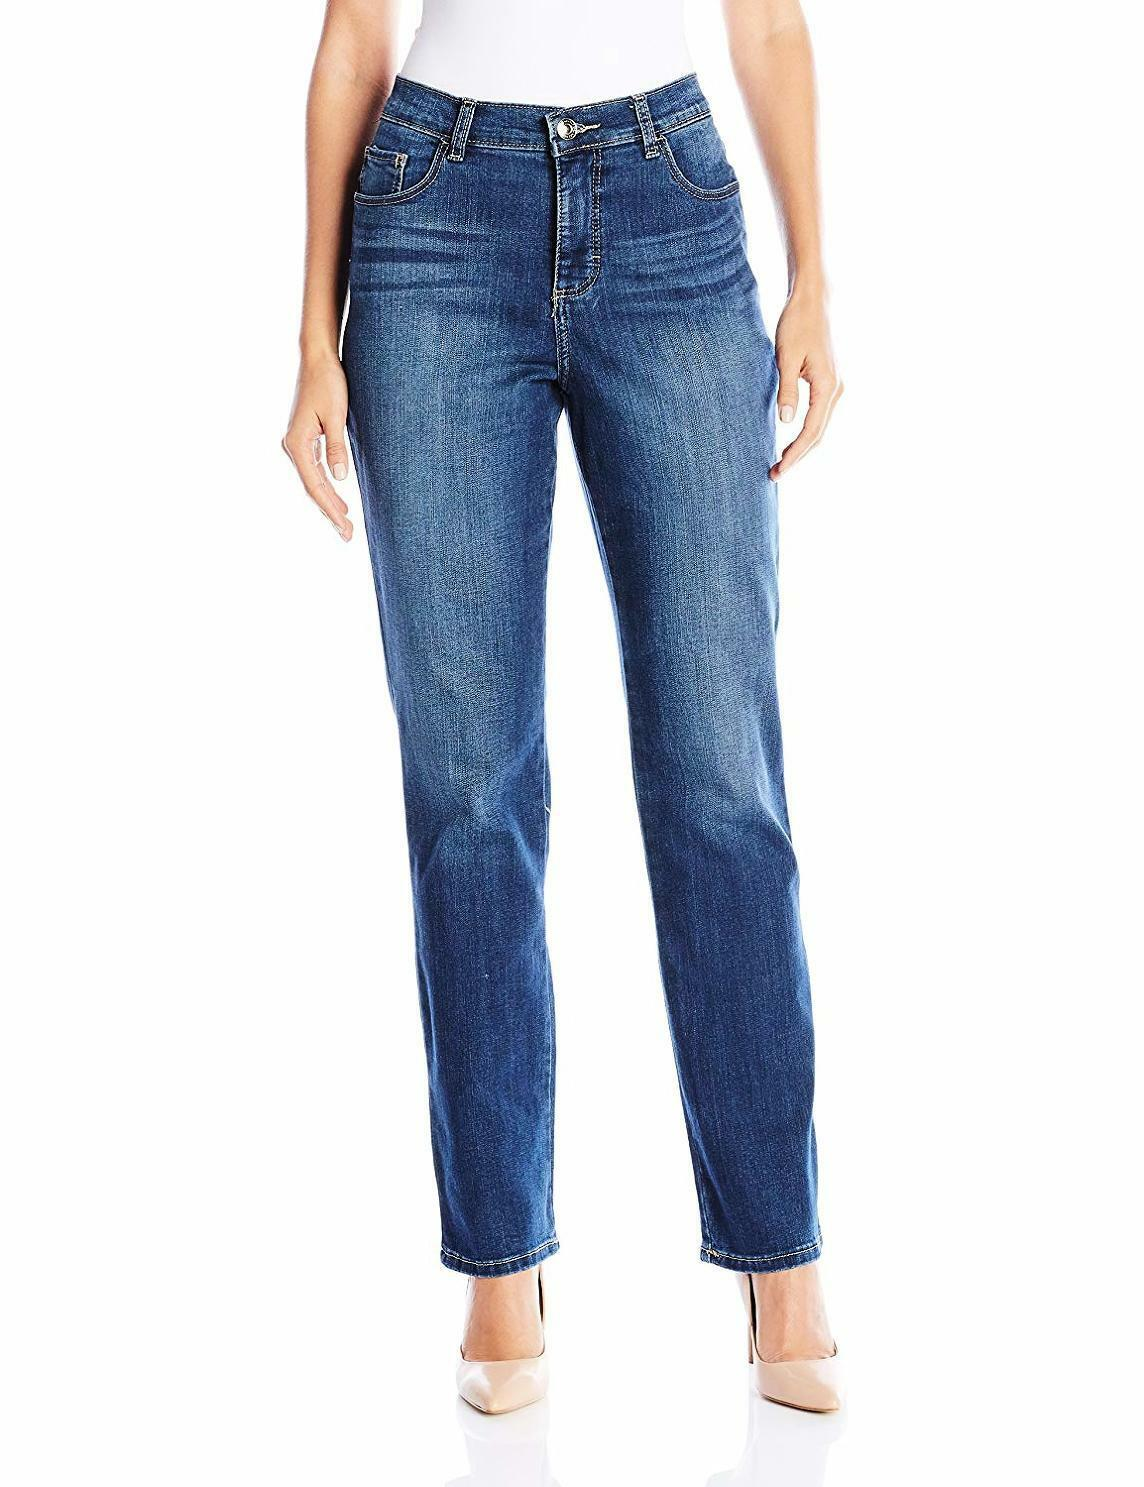 LEE Women's Classic Fit Teegan Straight-Leg Jean - Choose SZ color